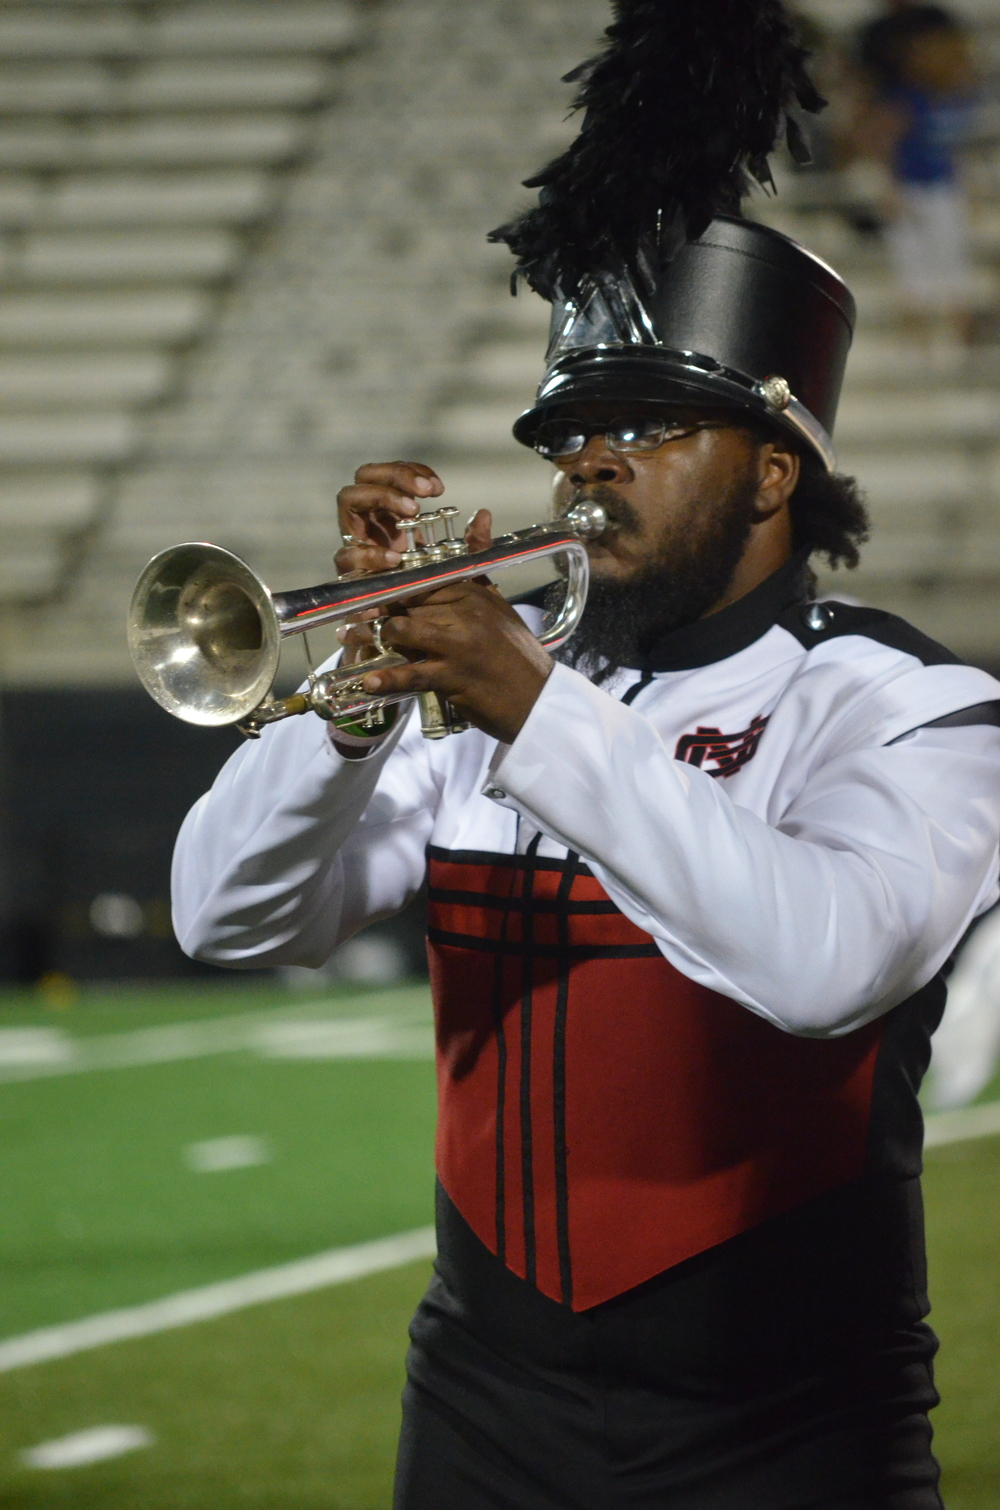 Another trumpeter takes the stage to show off his skills